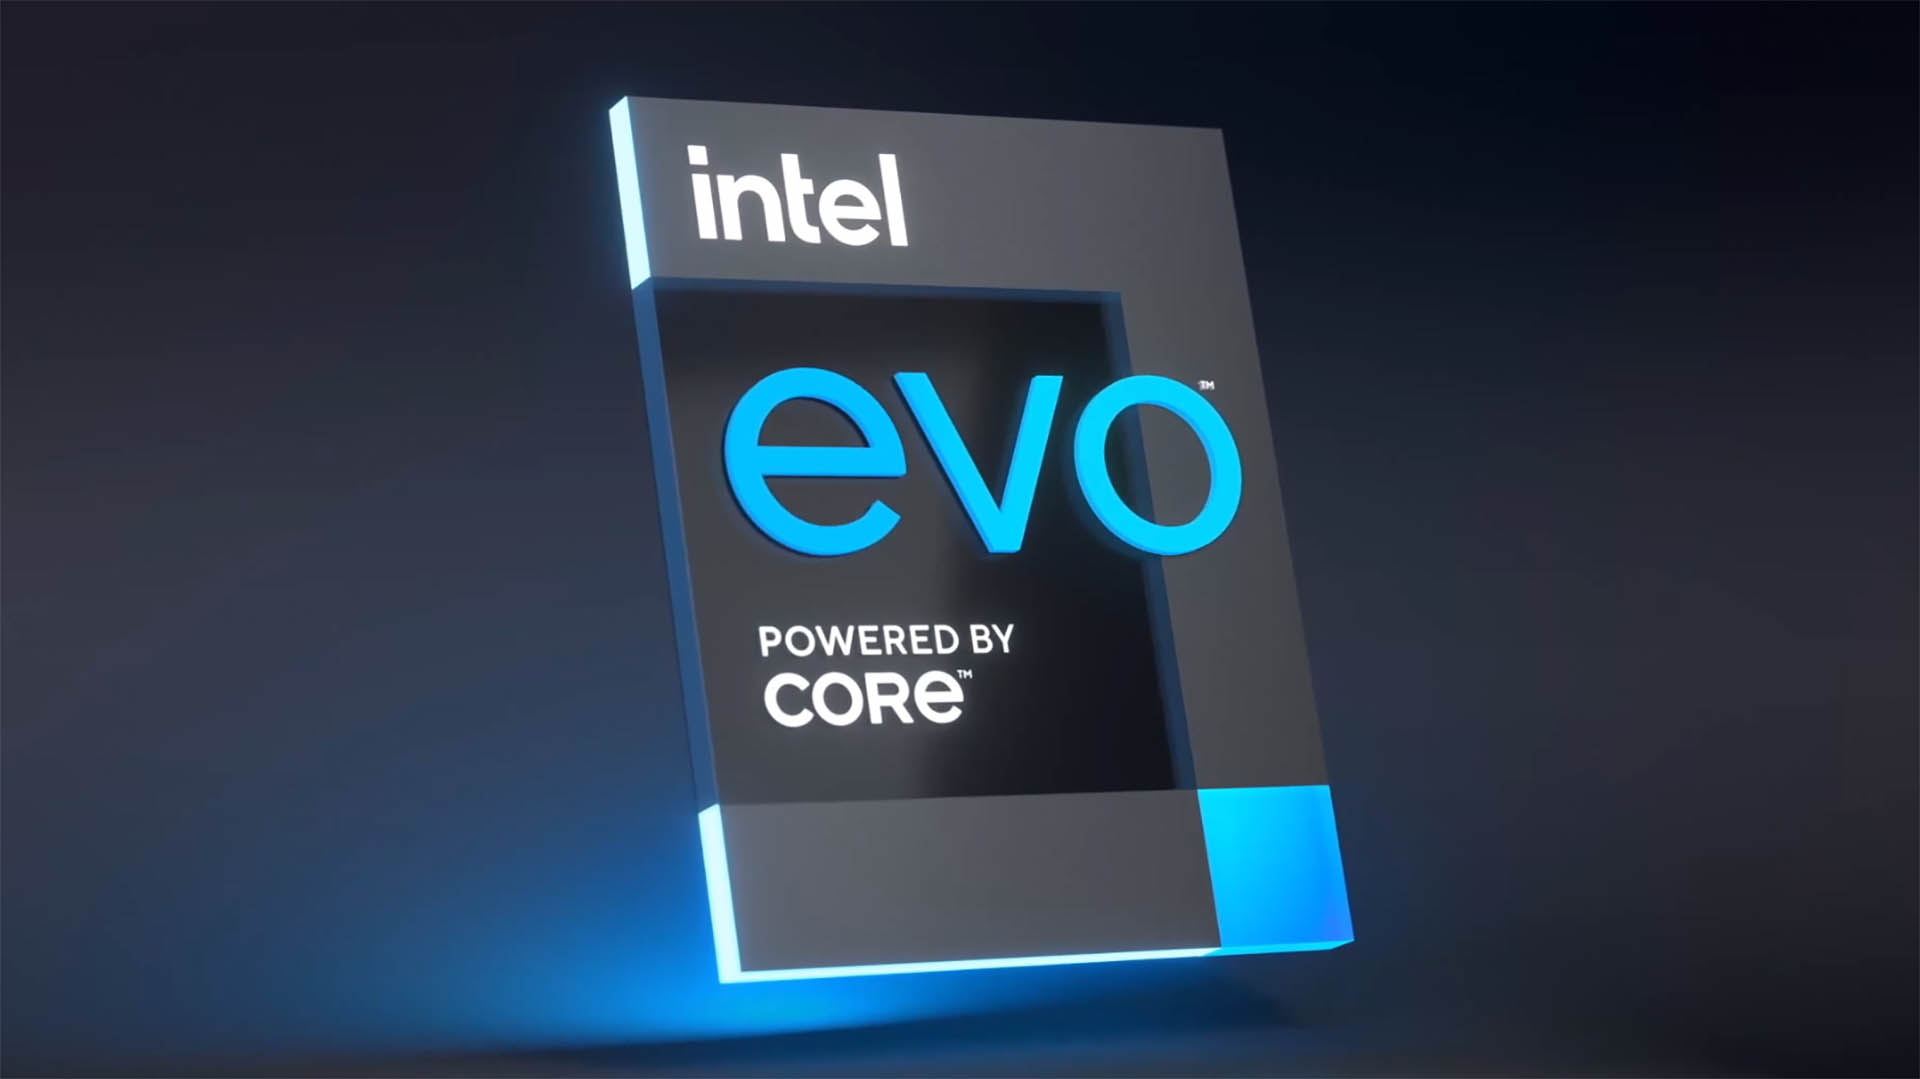 Intel's new Evo badge will help you find thin-and-light laptops that definitely don't suck